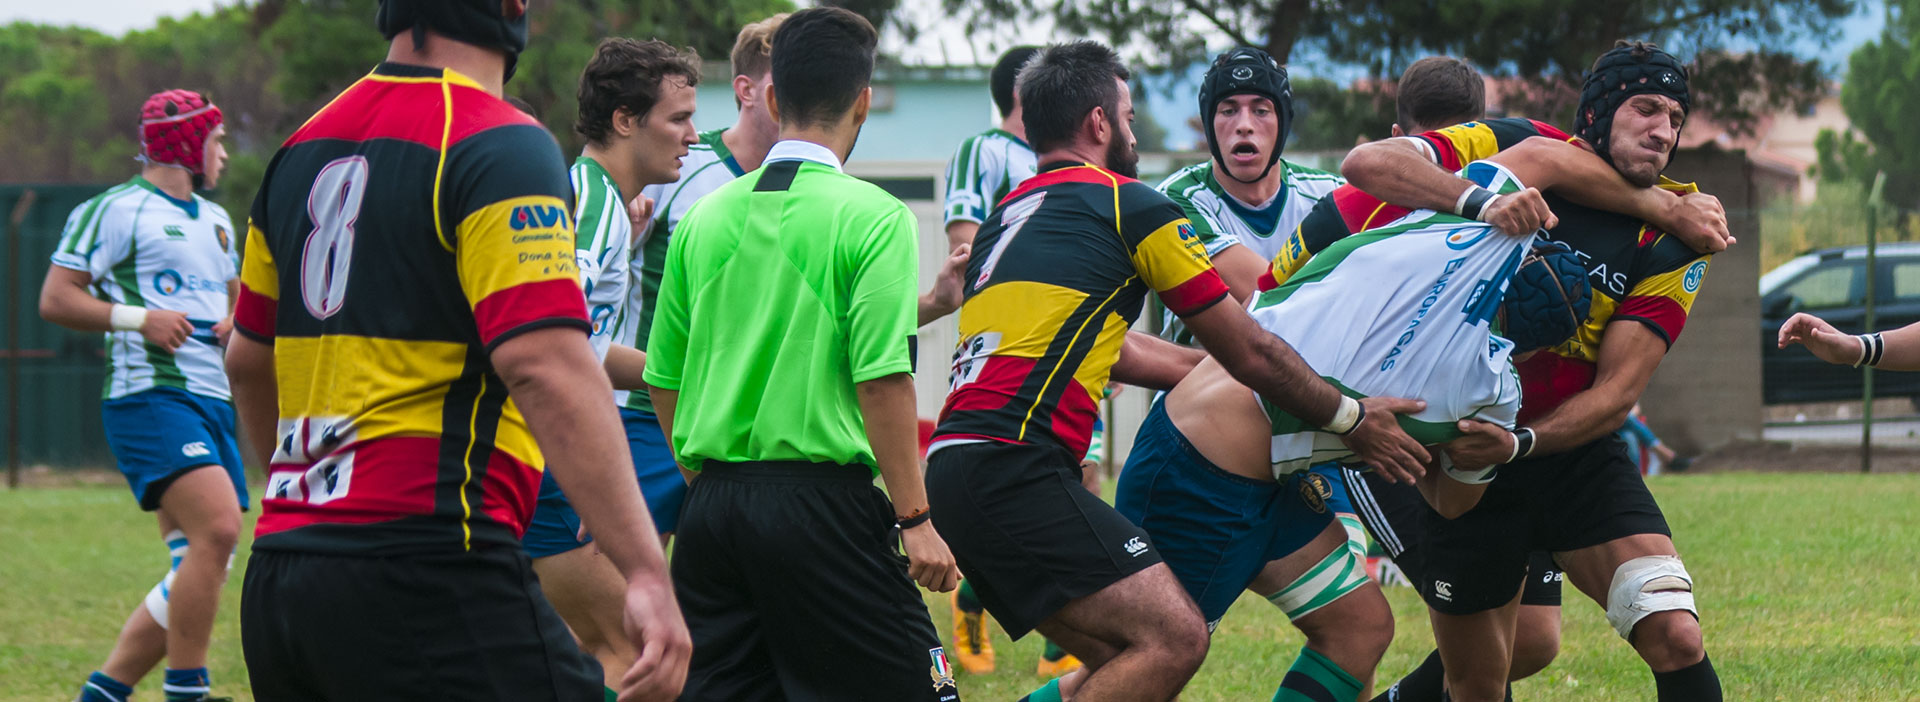 Cus Milano vs Rugby Capoterra